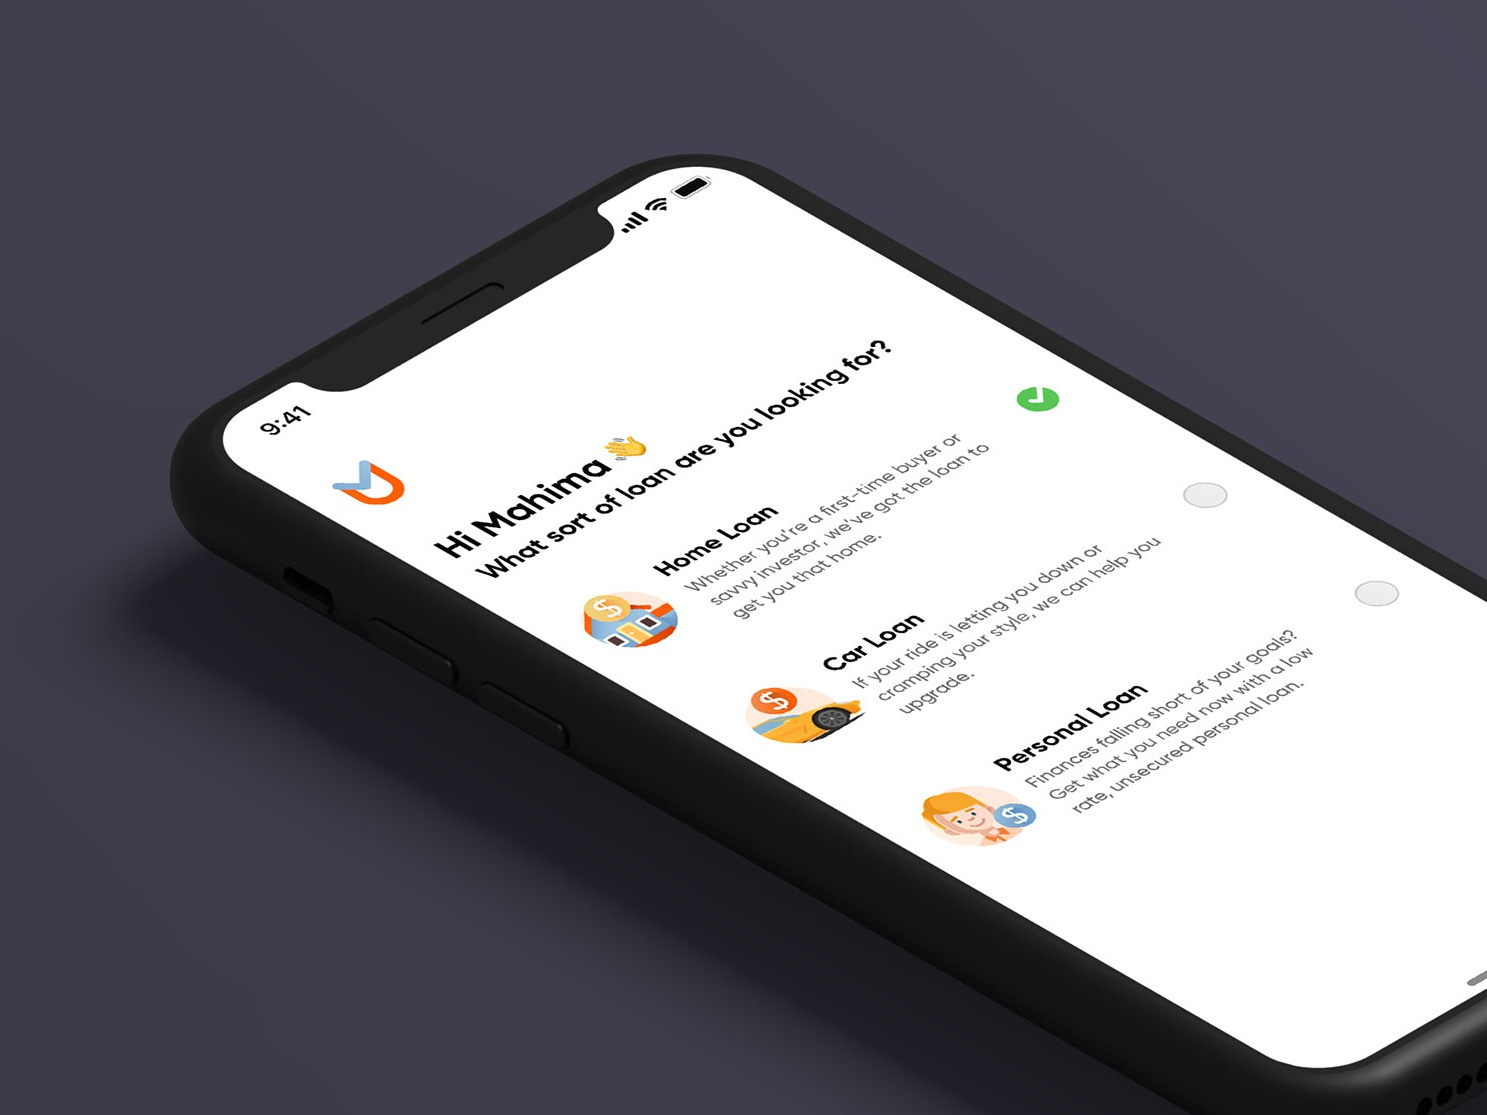 Finance Loan UI Concept bank loan financing banking credit card fintech clean mobile illustration user experience on-demand finance iphone app minimal design interface ios ux ui